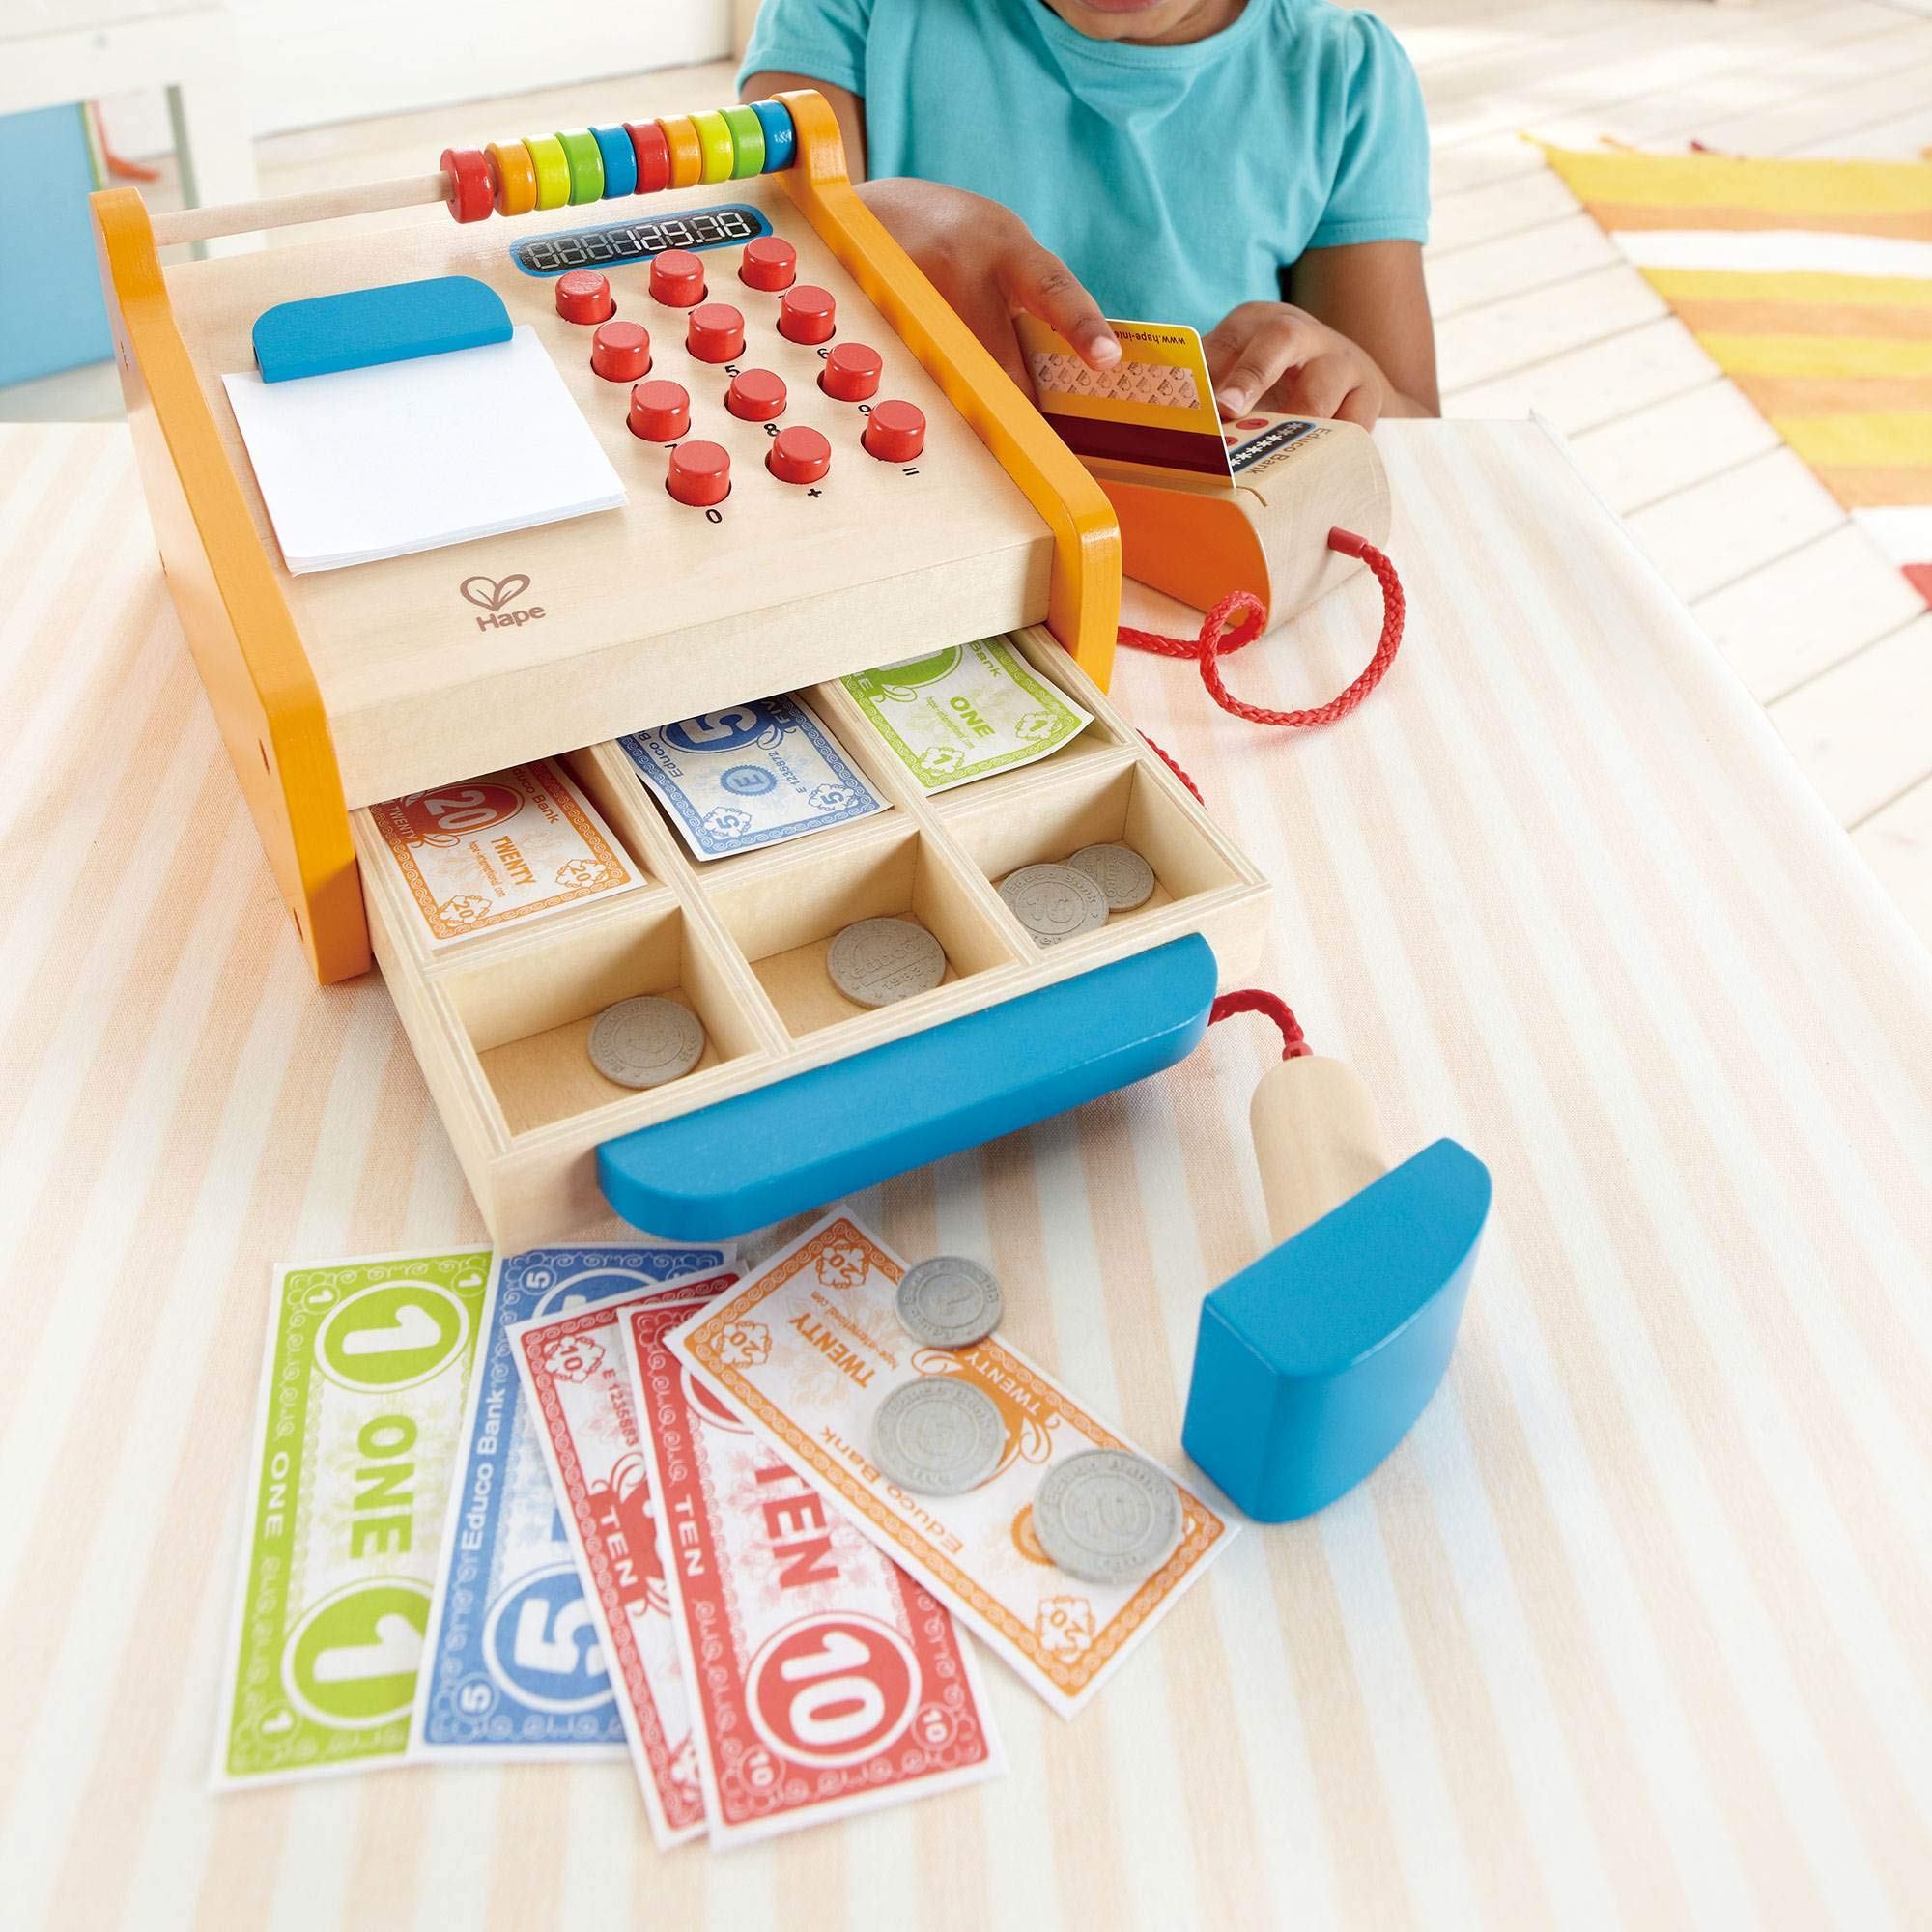 Hape Toys Kids Wooden Cash Register Pretend Playset Wooden Shopping Cart by Hape (Image #3)